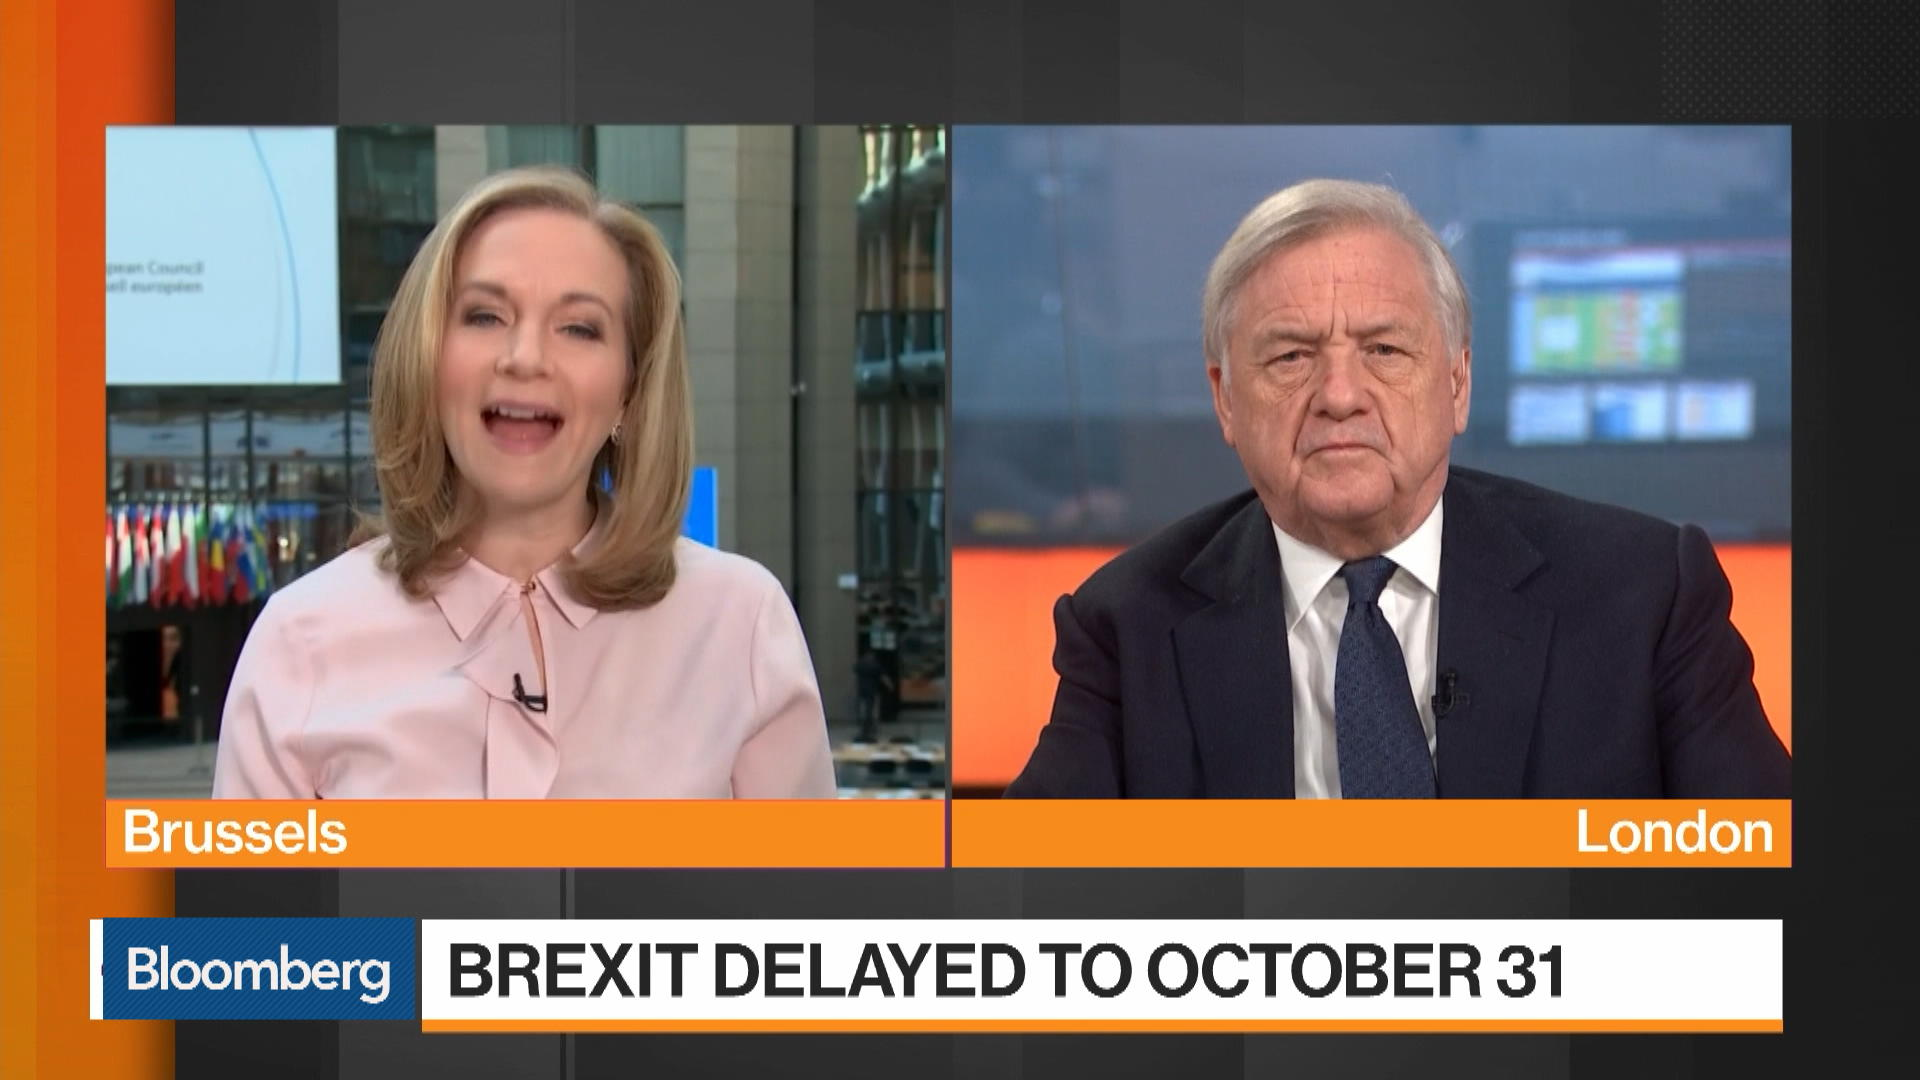 Rake: Staying in Customs Union Is Most Sensible Answer for U.K. Economy